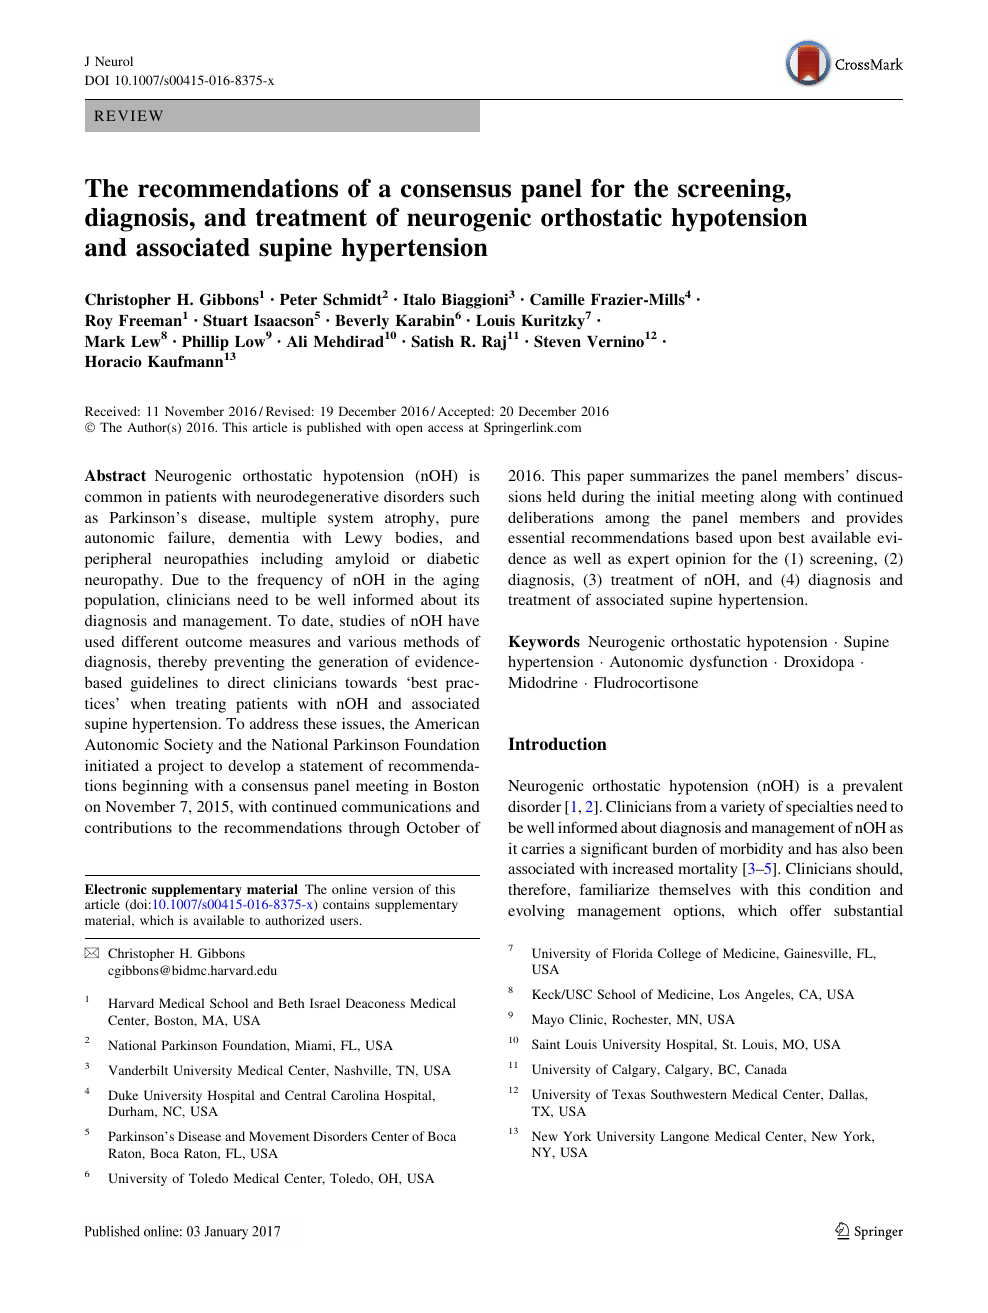 The recommendations of a consensus panel for the screening